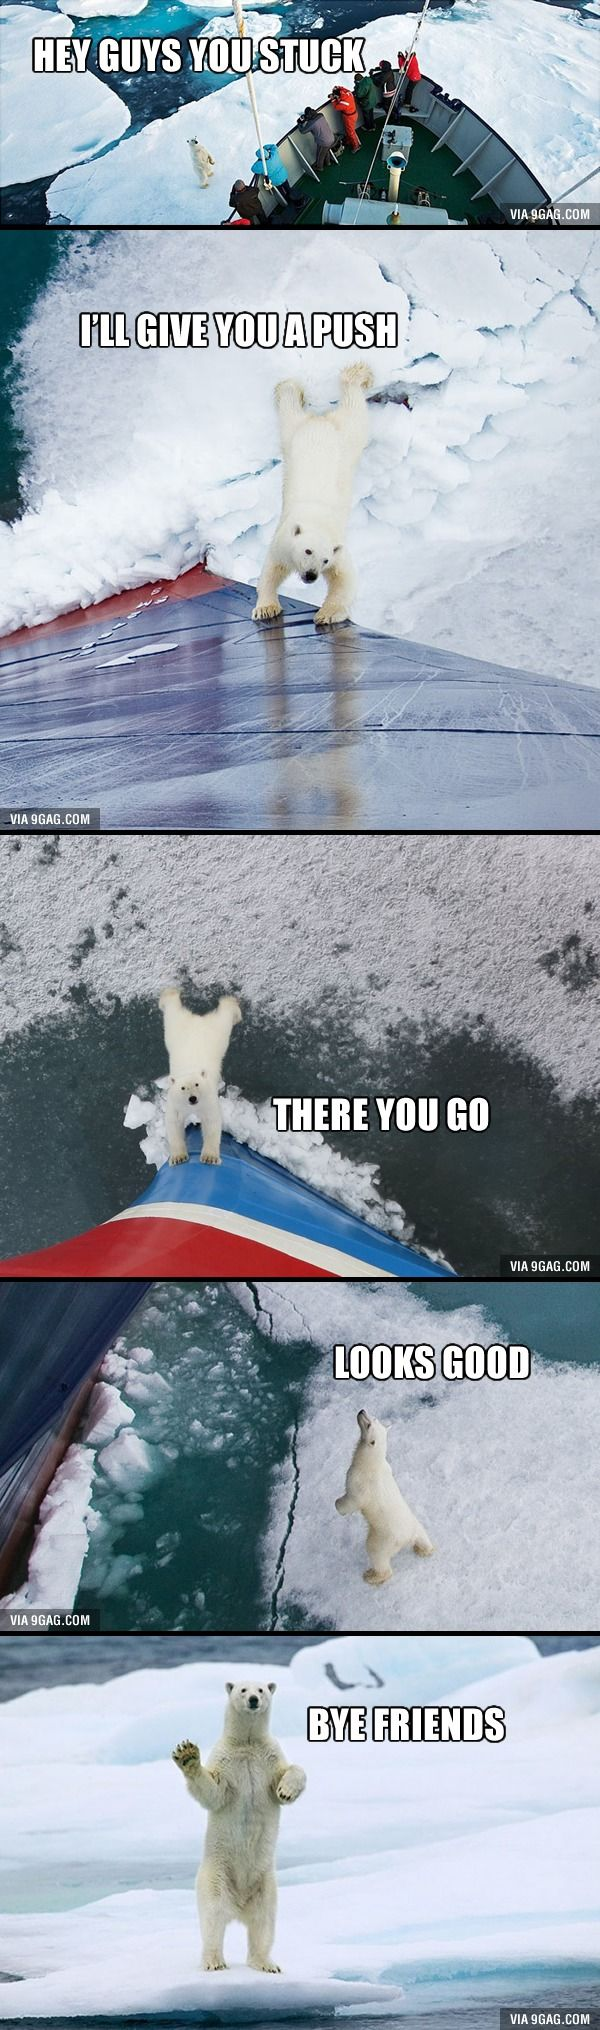 Friendliest polar bear ever! Probably just wanted them out of his habitat.